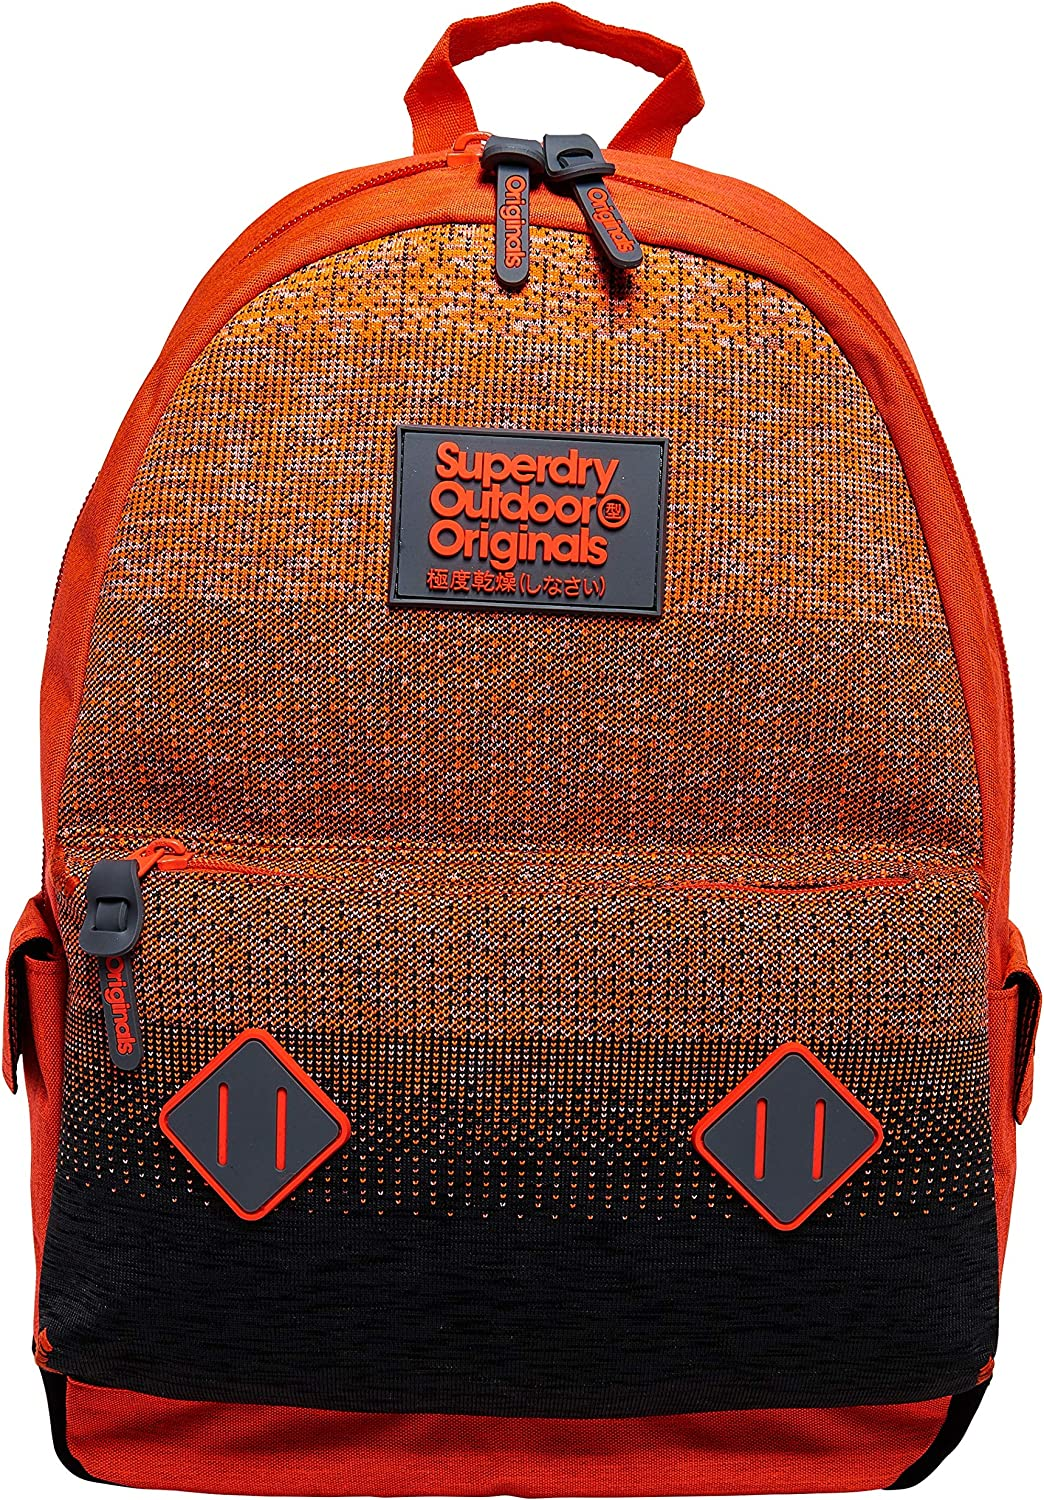 Superdry Accessories Men's Knitter Montana Backpack